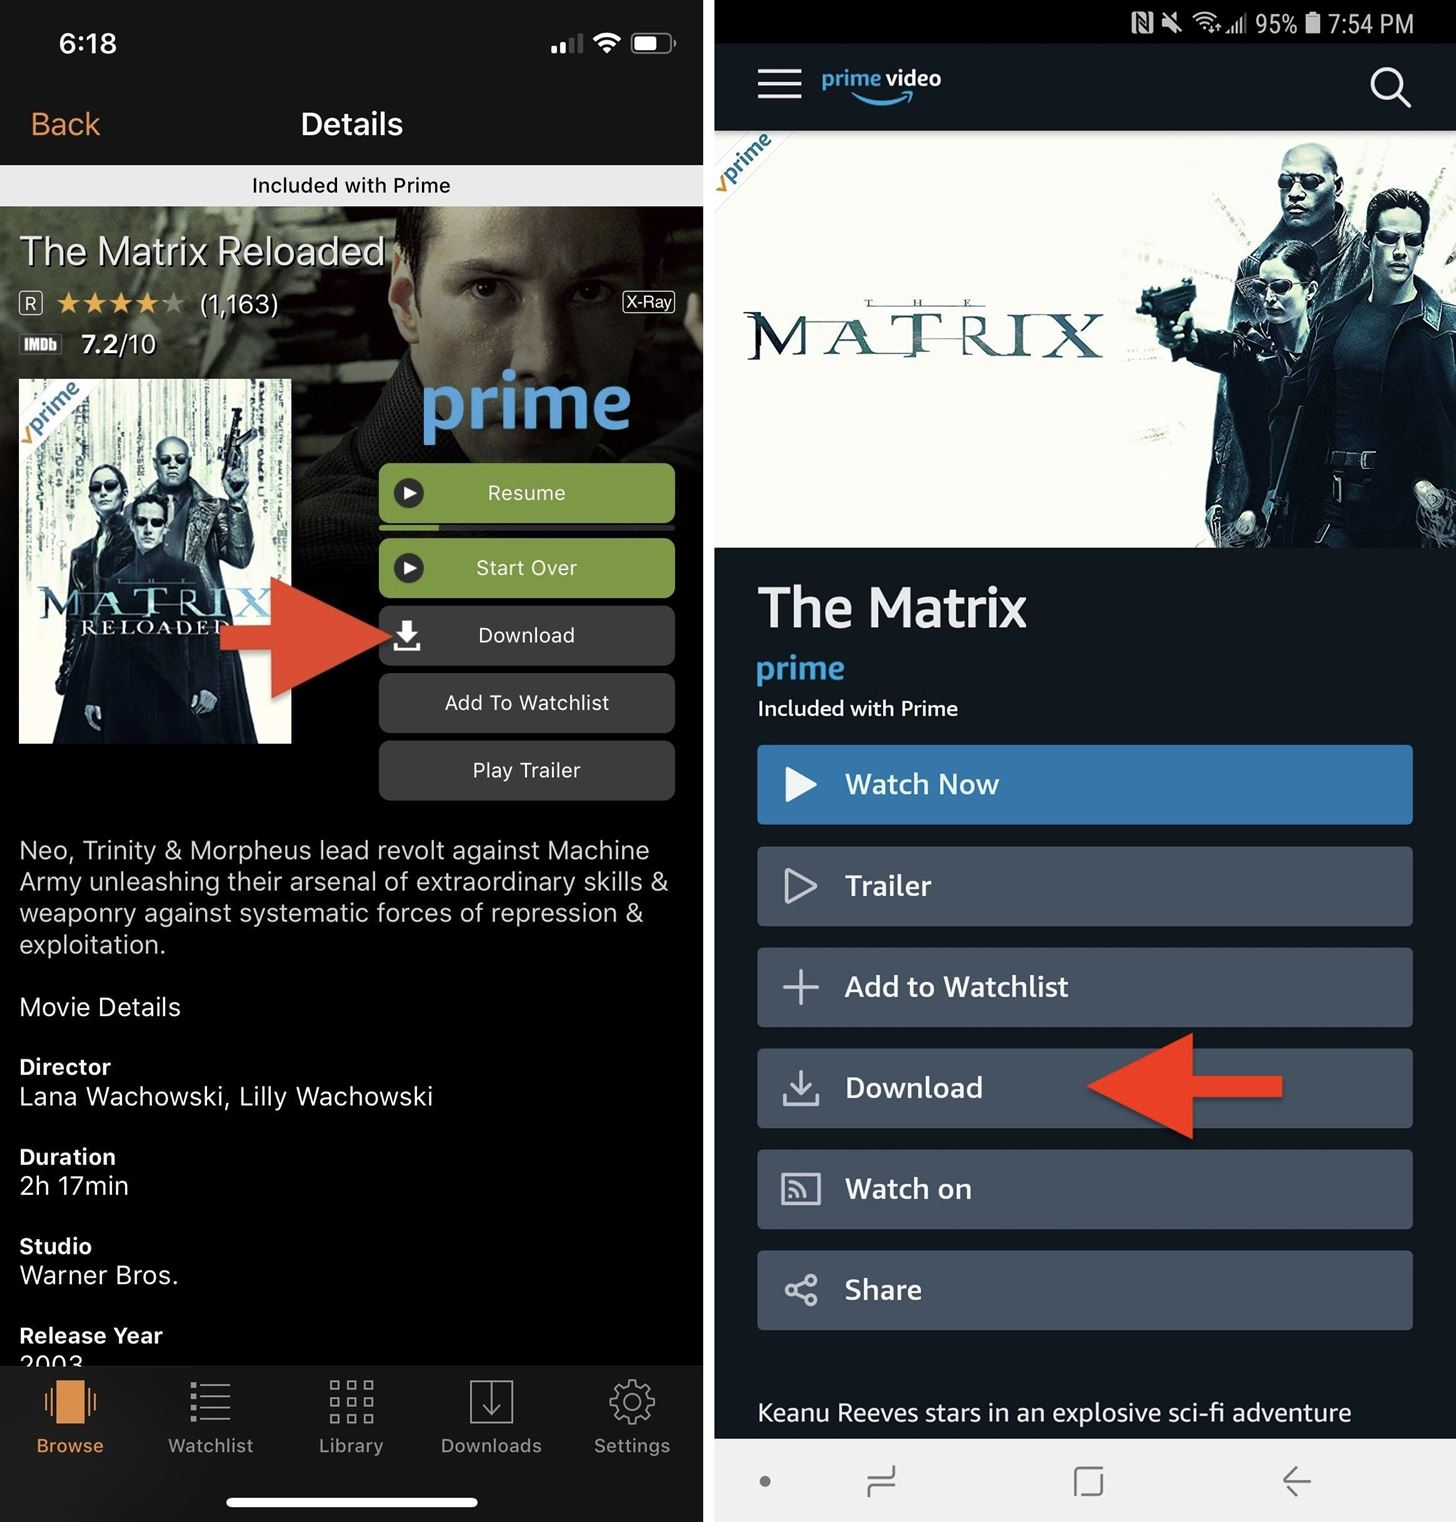 can you download movies purchased from amazon